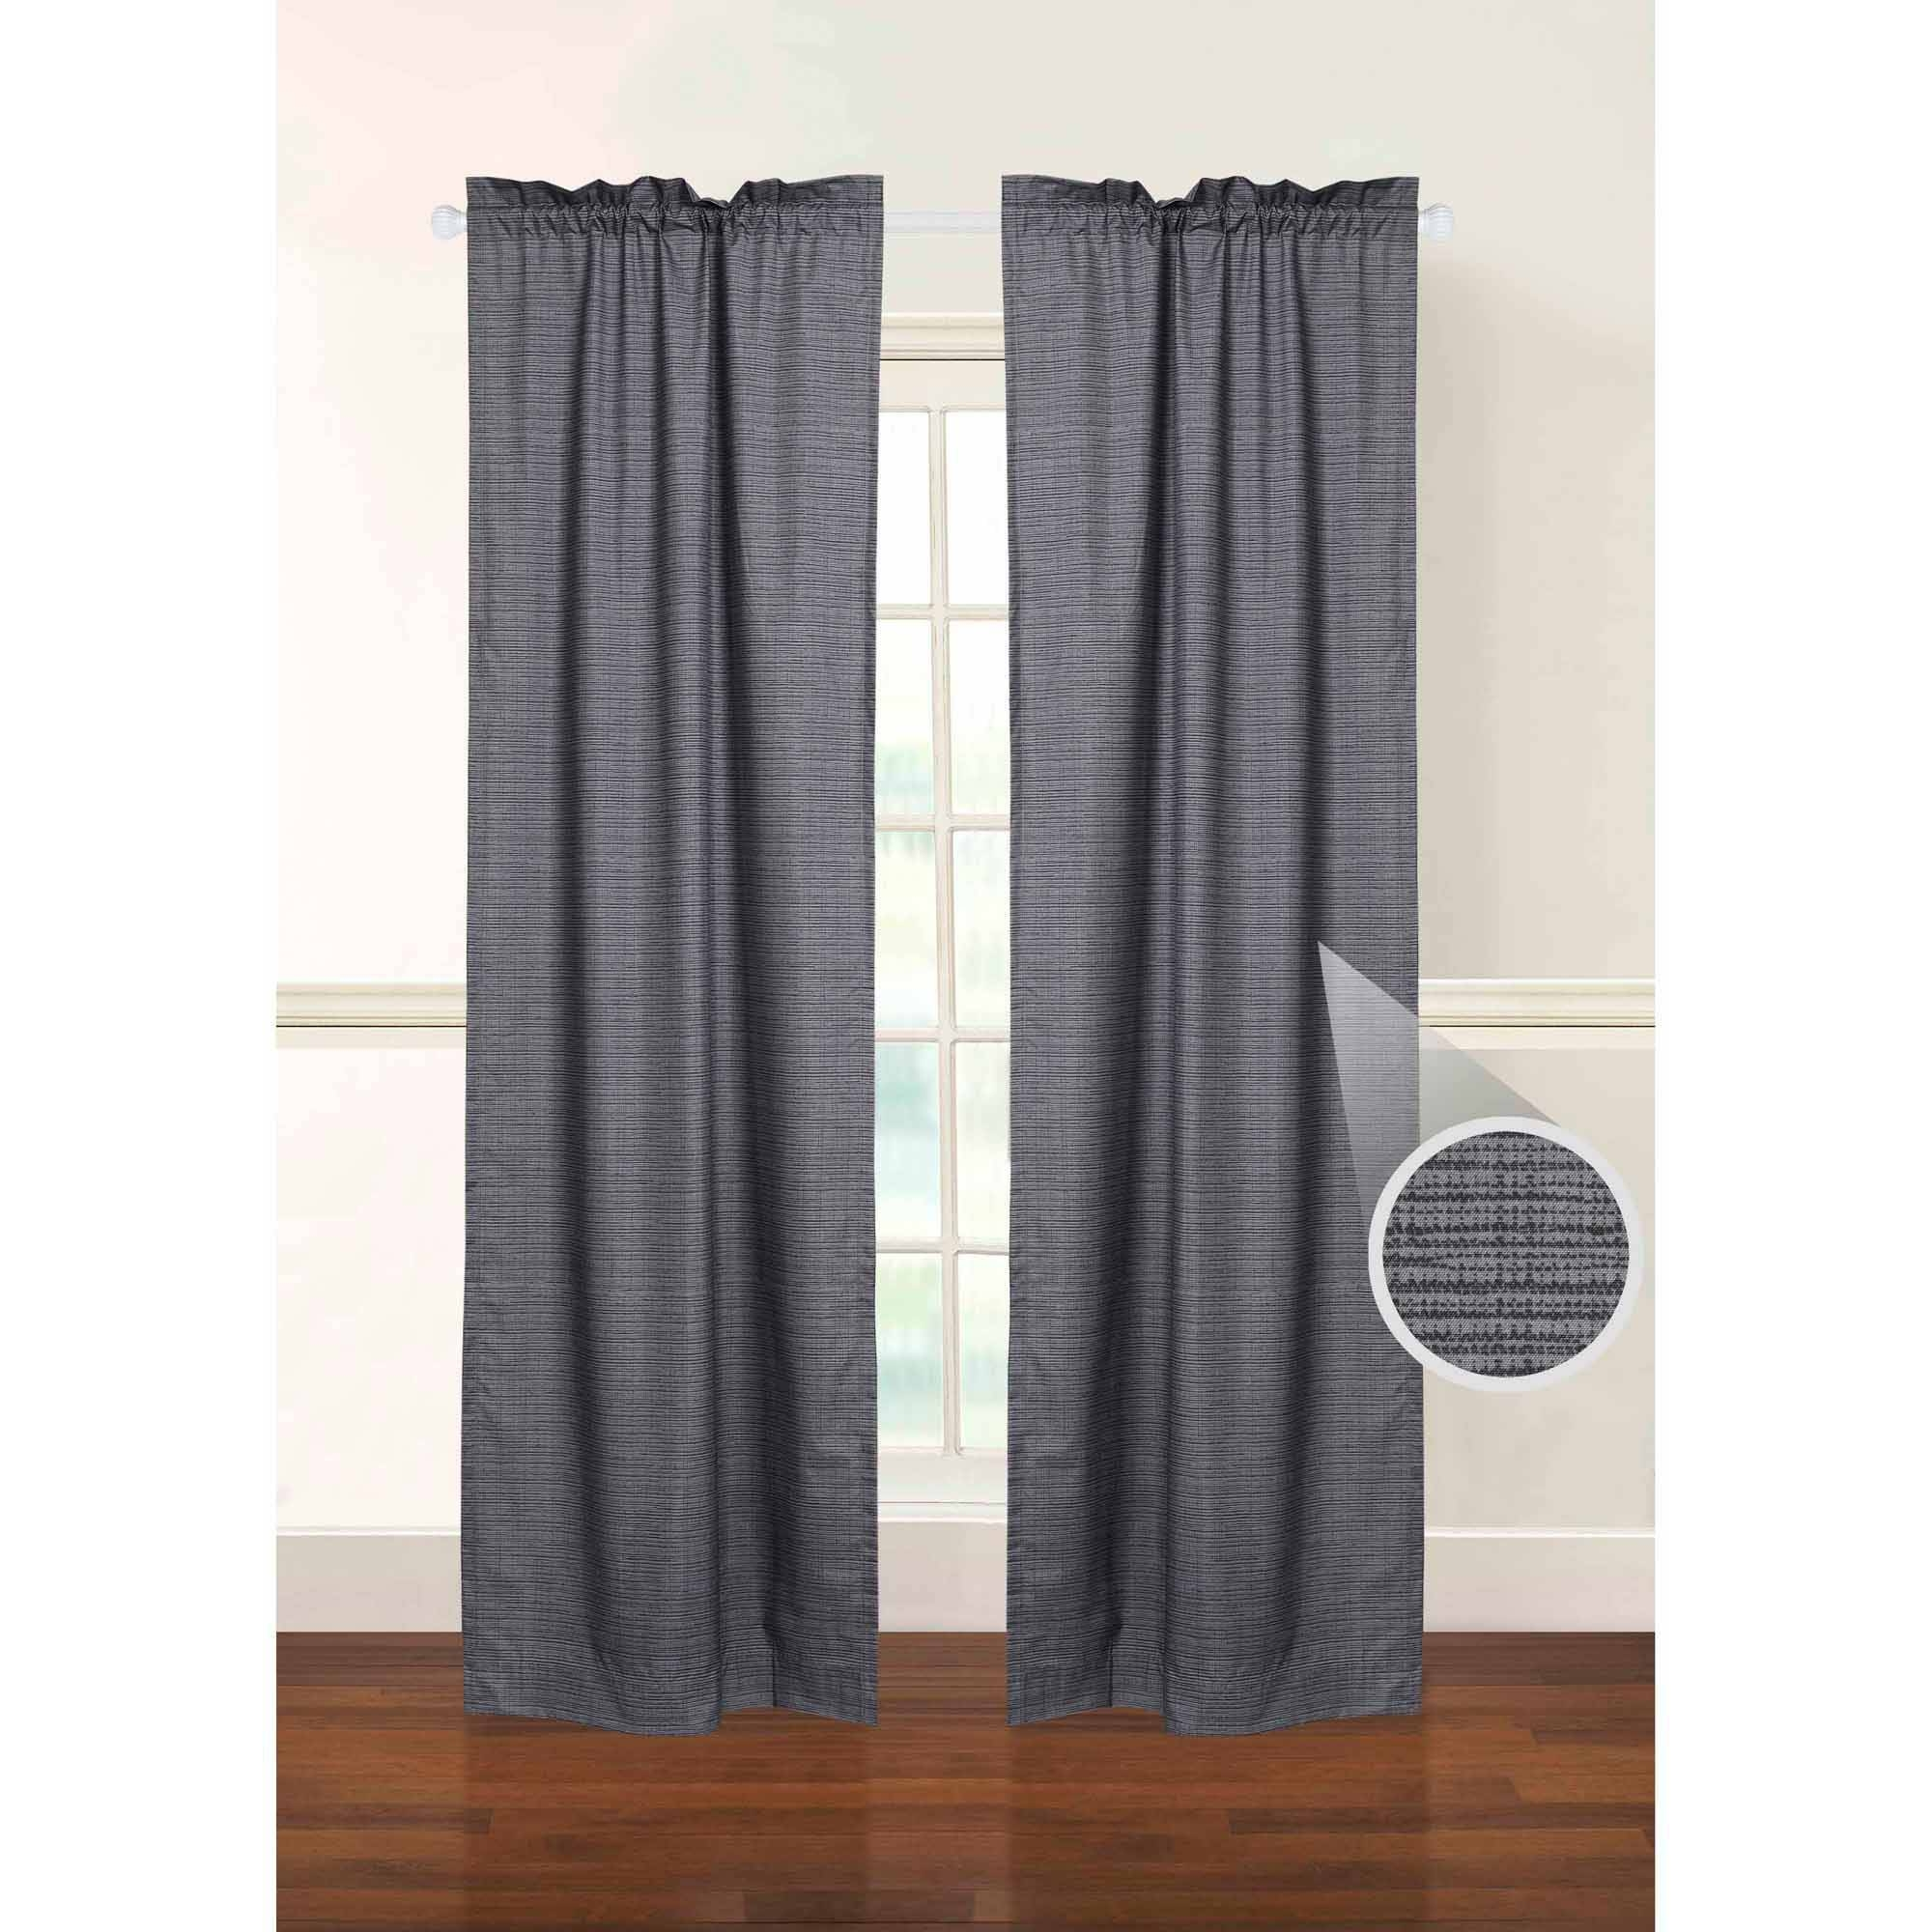 Featured Image of Patterned Blackout Curtains